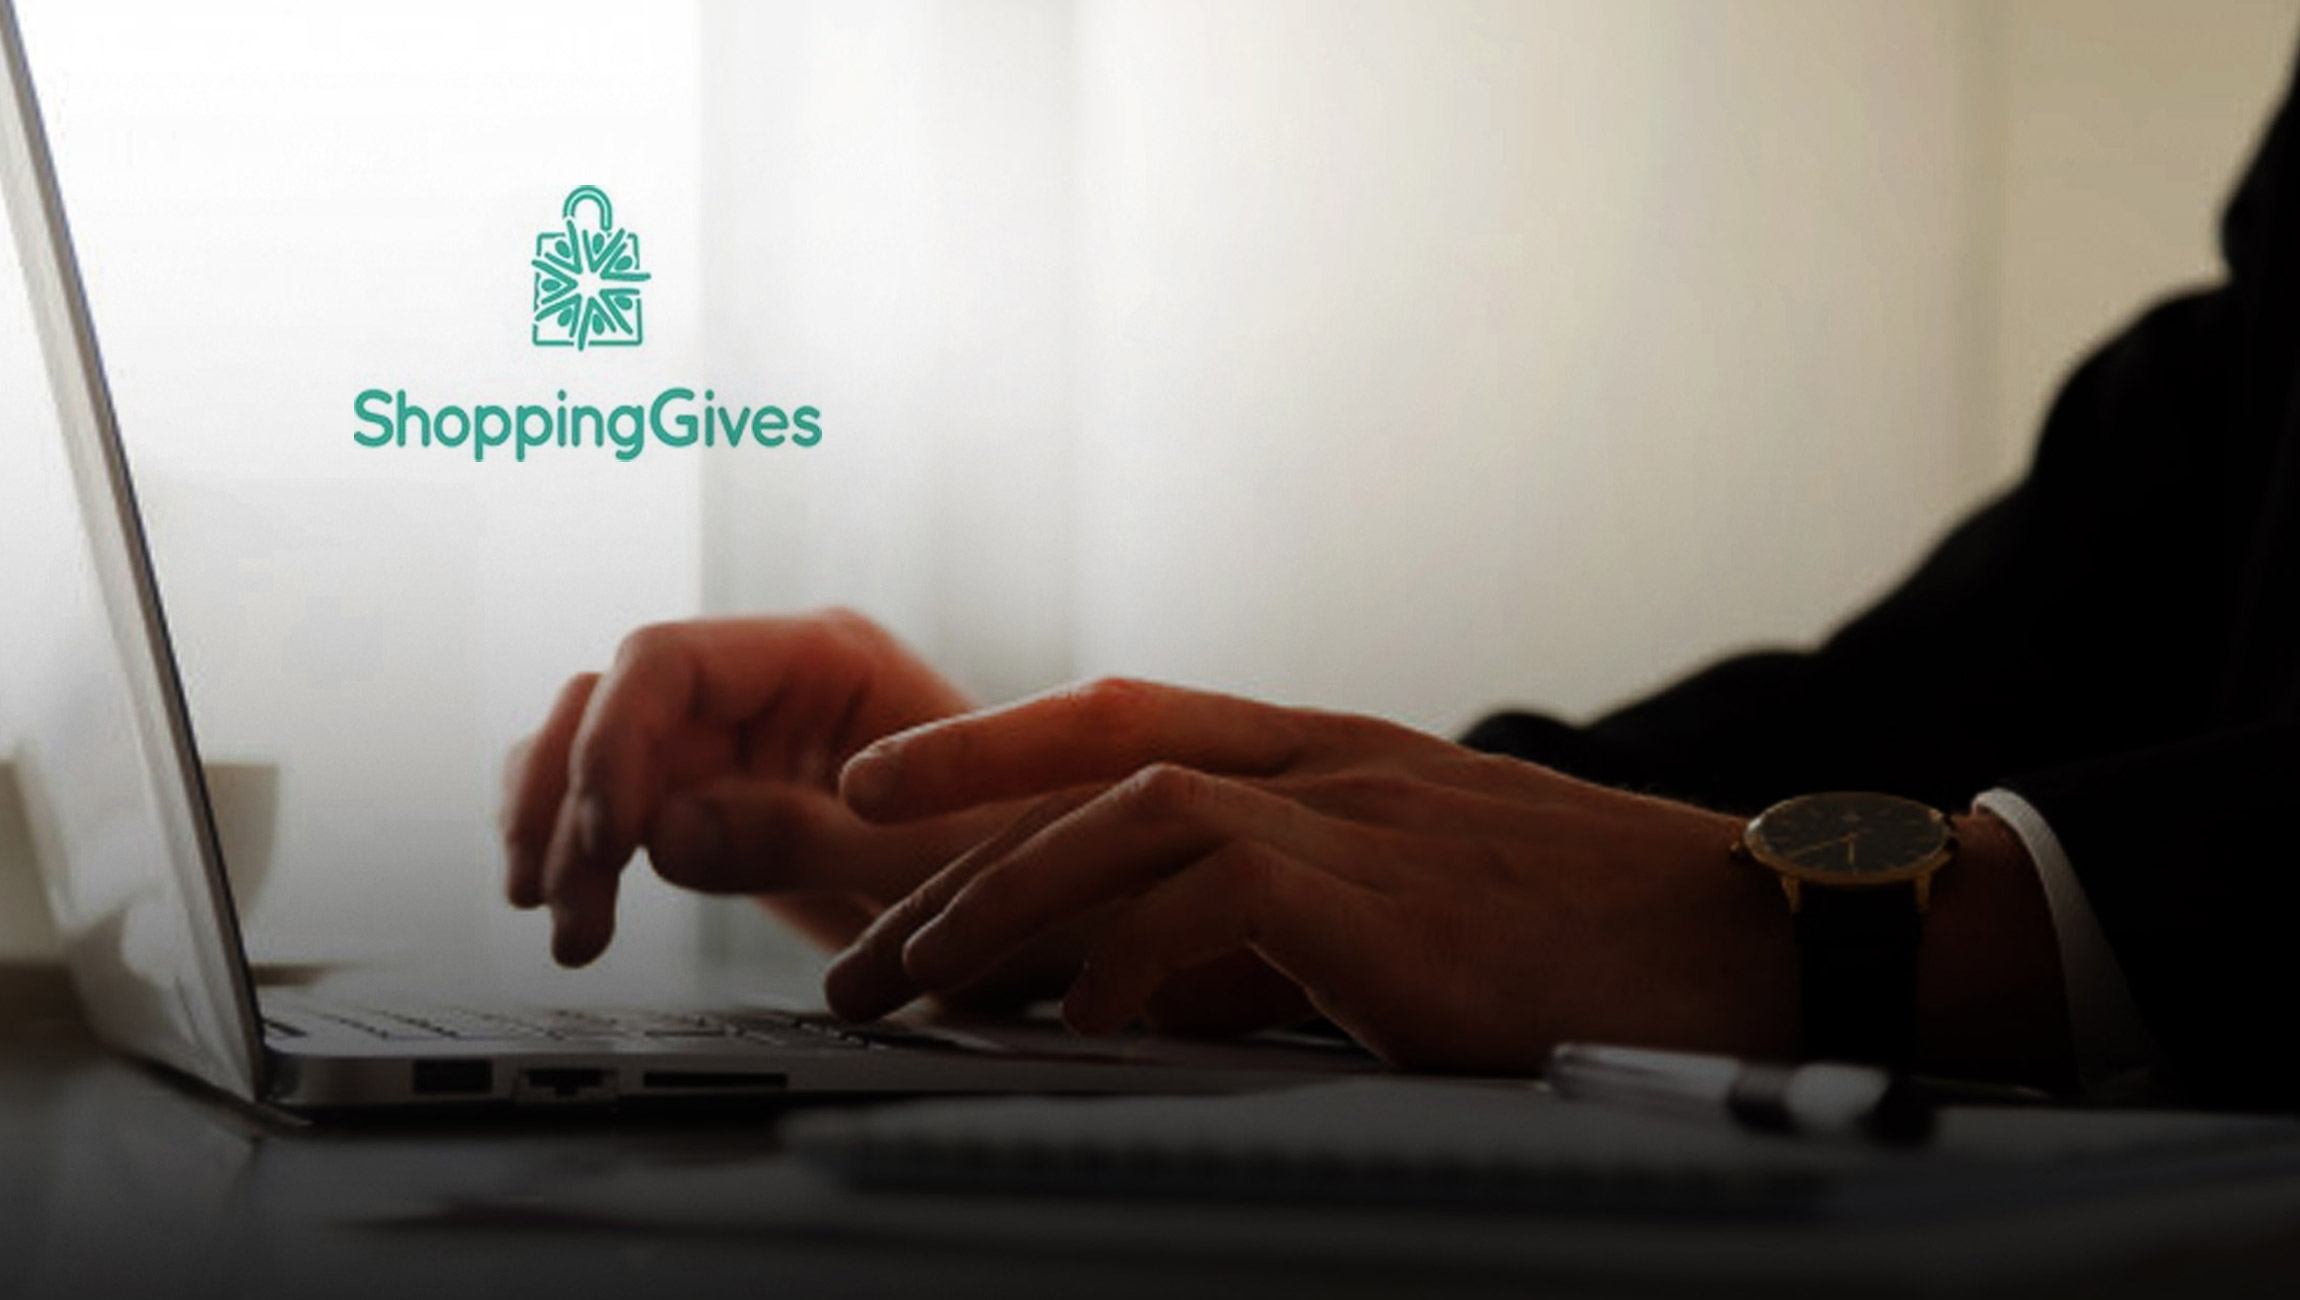 ShoppingGives-Recognized-by-SIIA-as-Best-Emerging-Technology